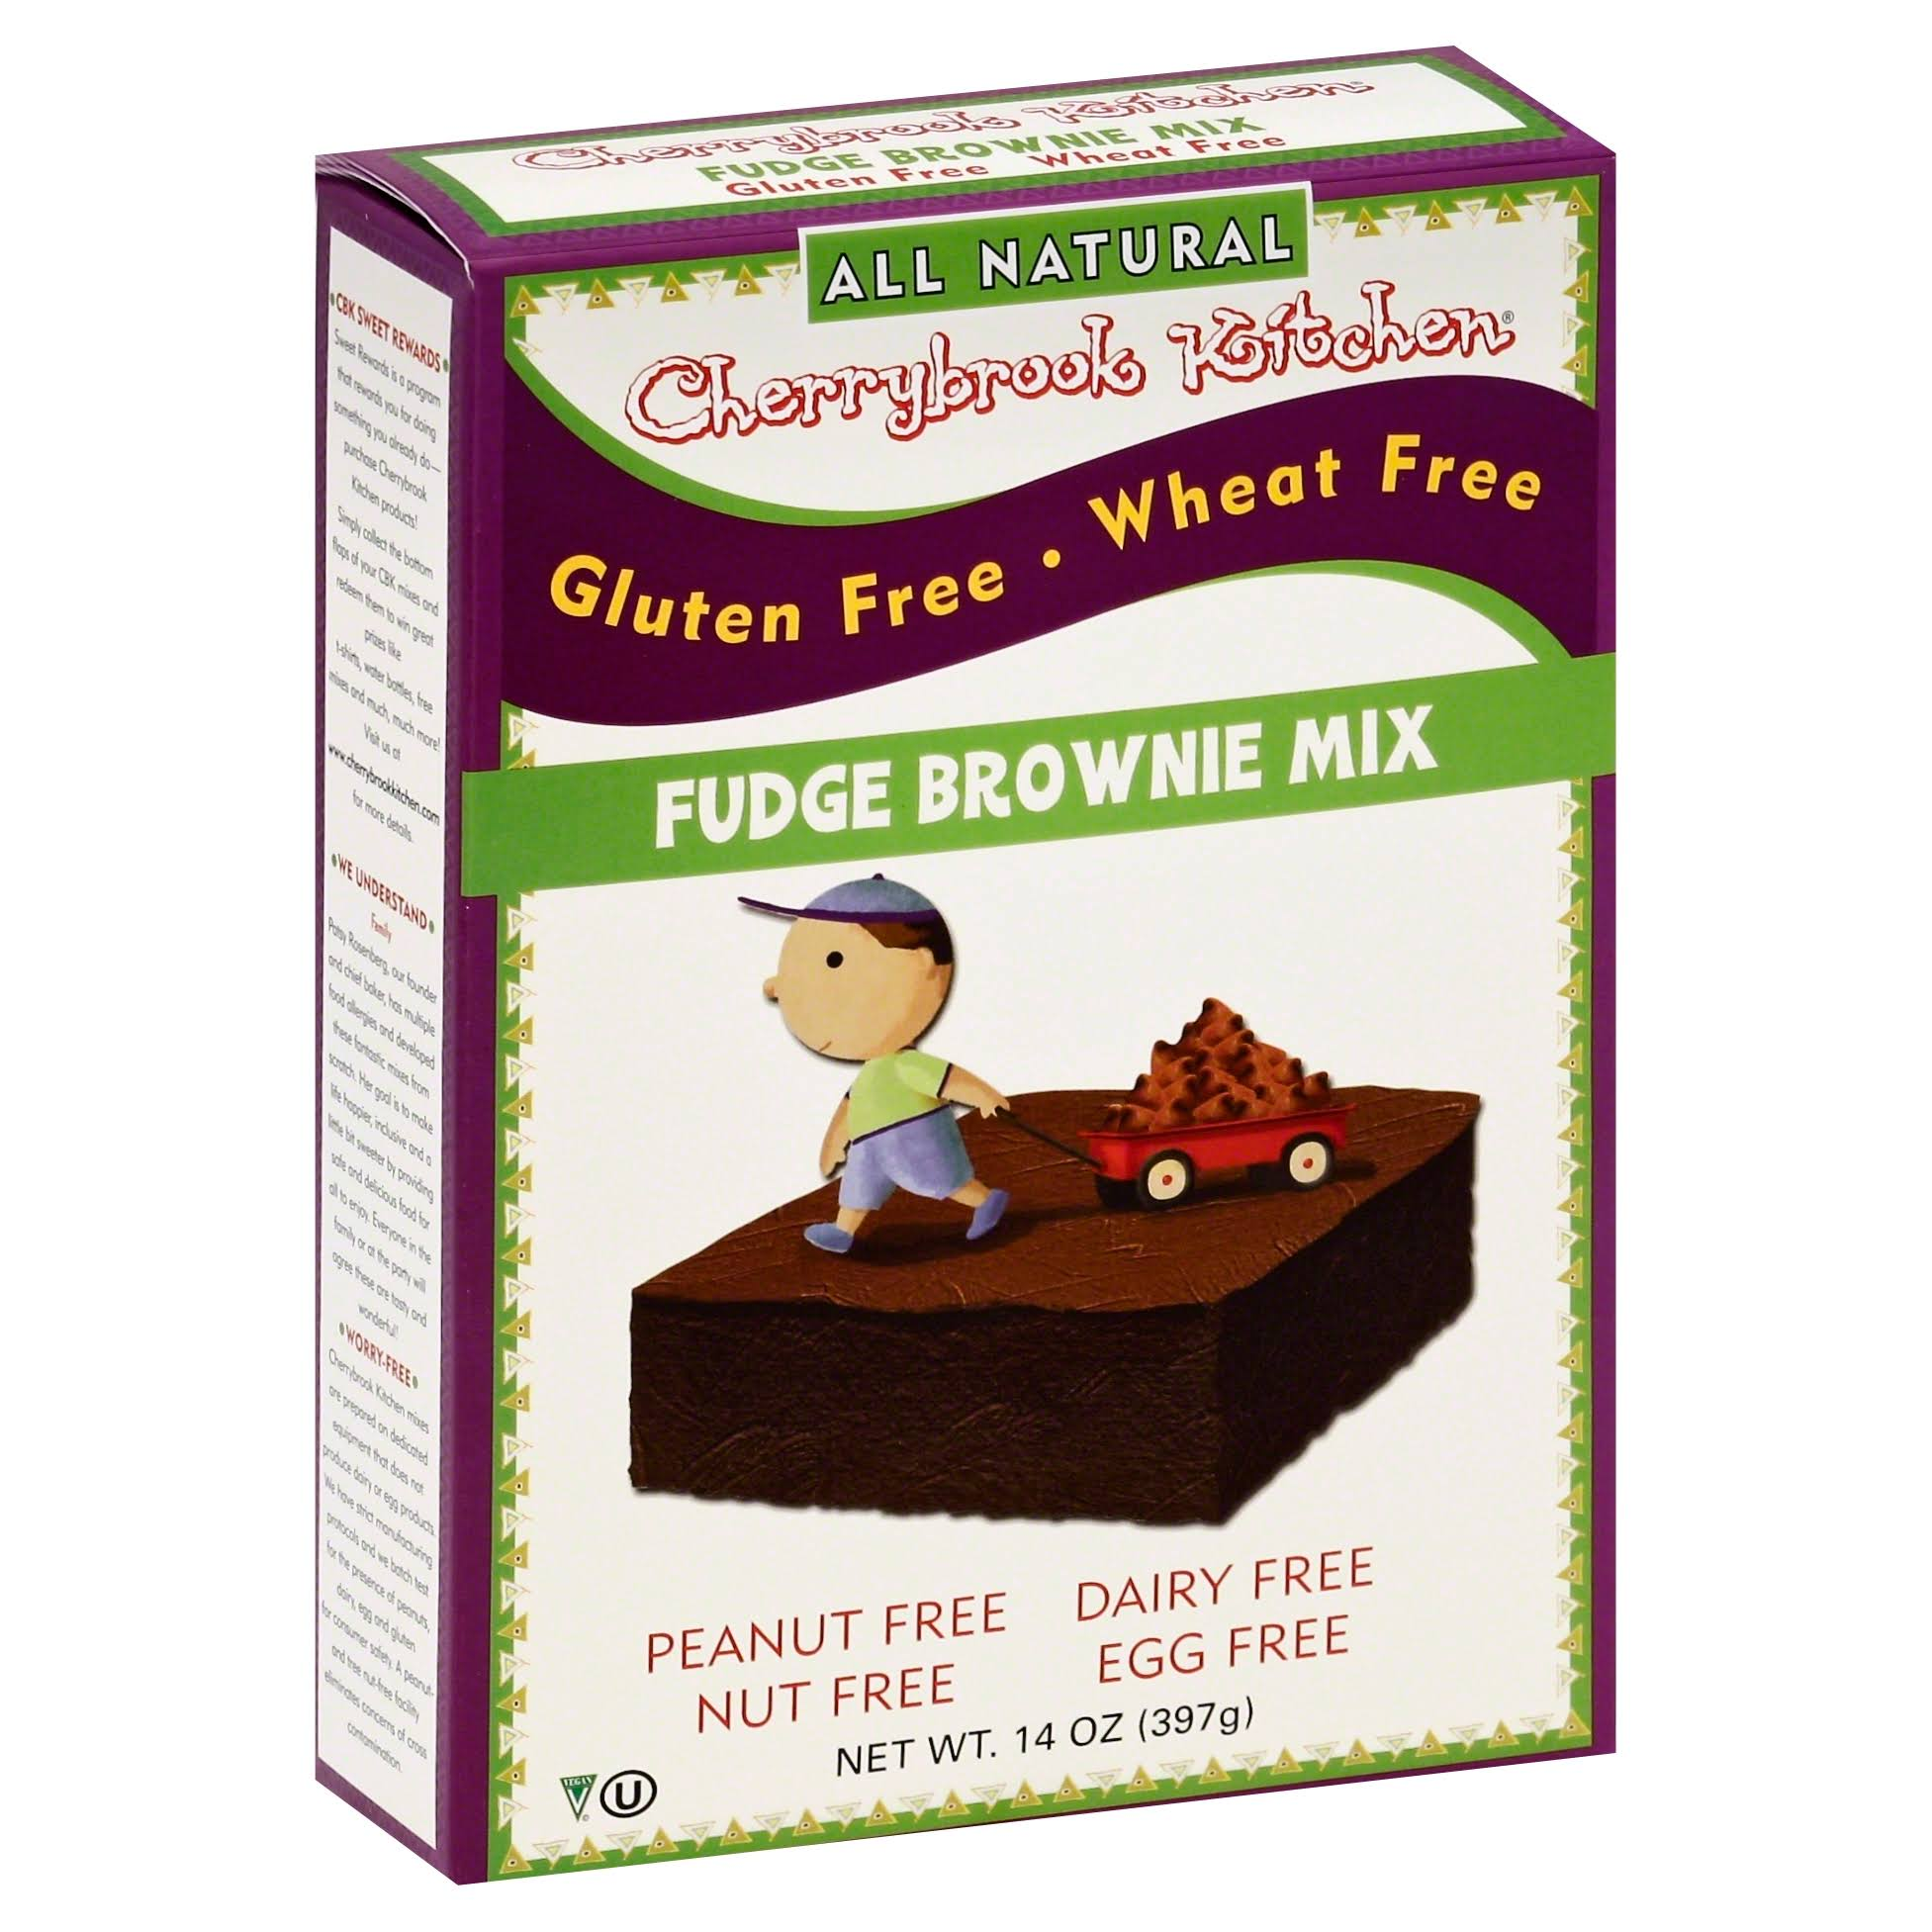 Cherrybrook Kitchen Gluten Free Dreams Fudge Brownie Mix - 397g